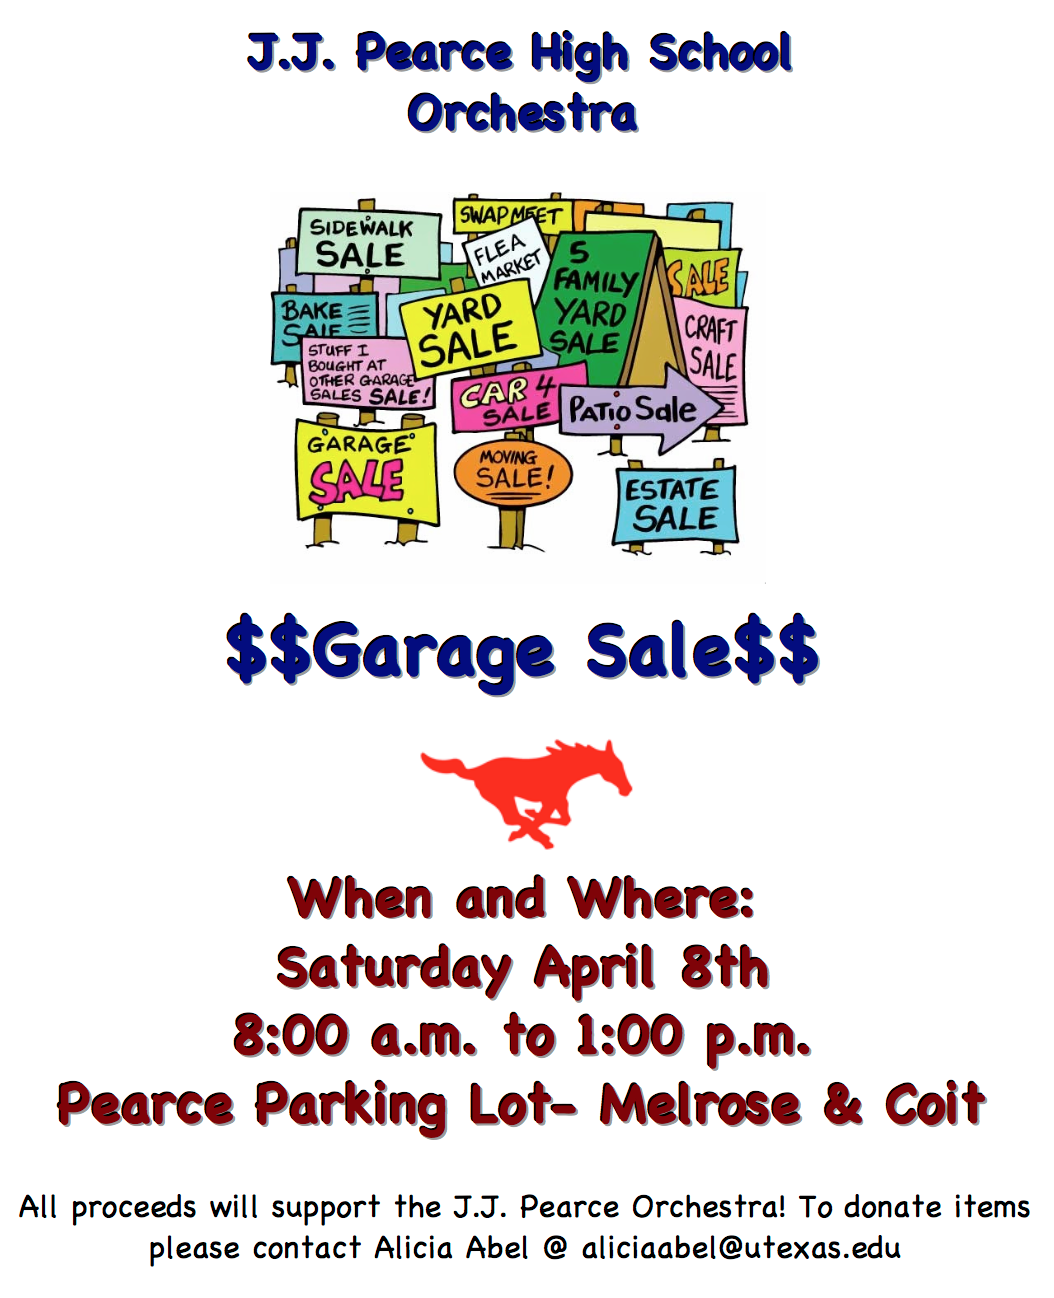 Orchestra-Wide Garage Sale